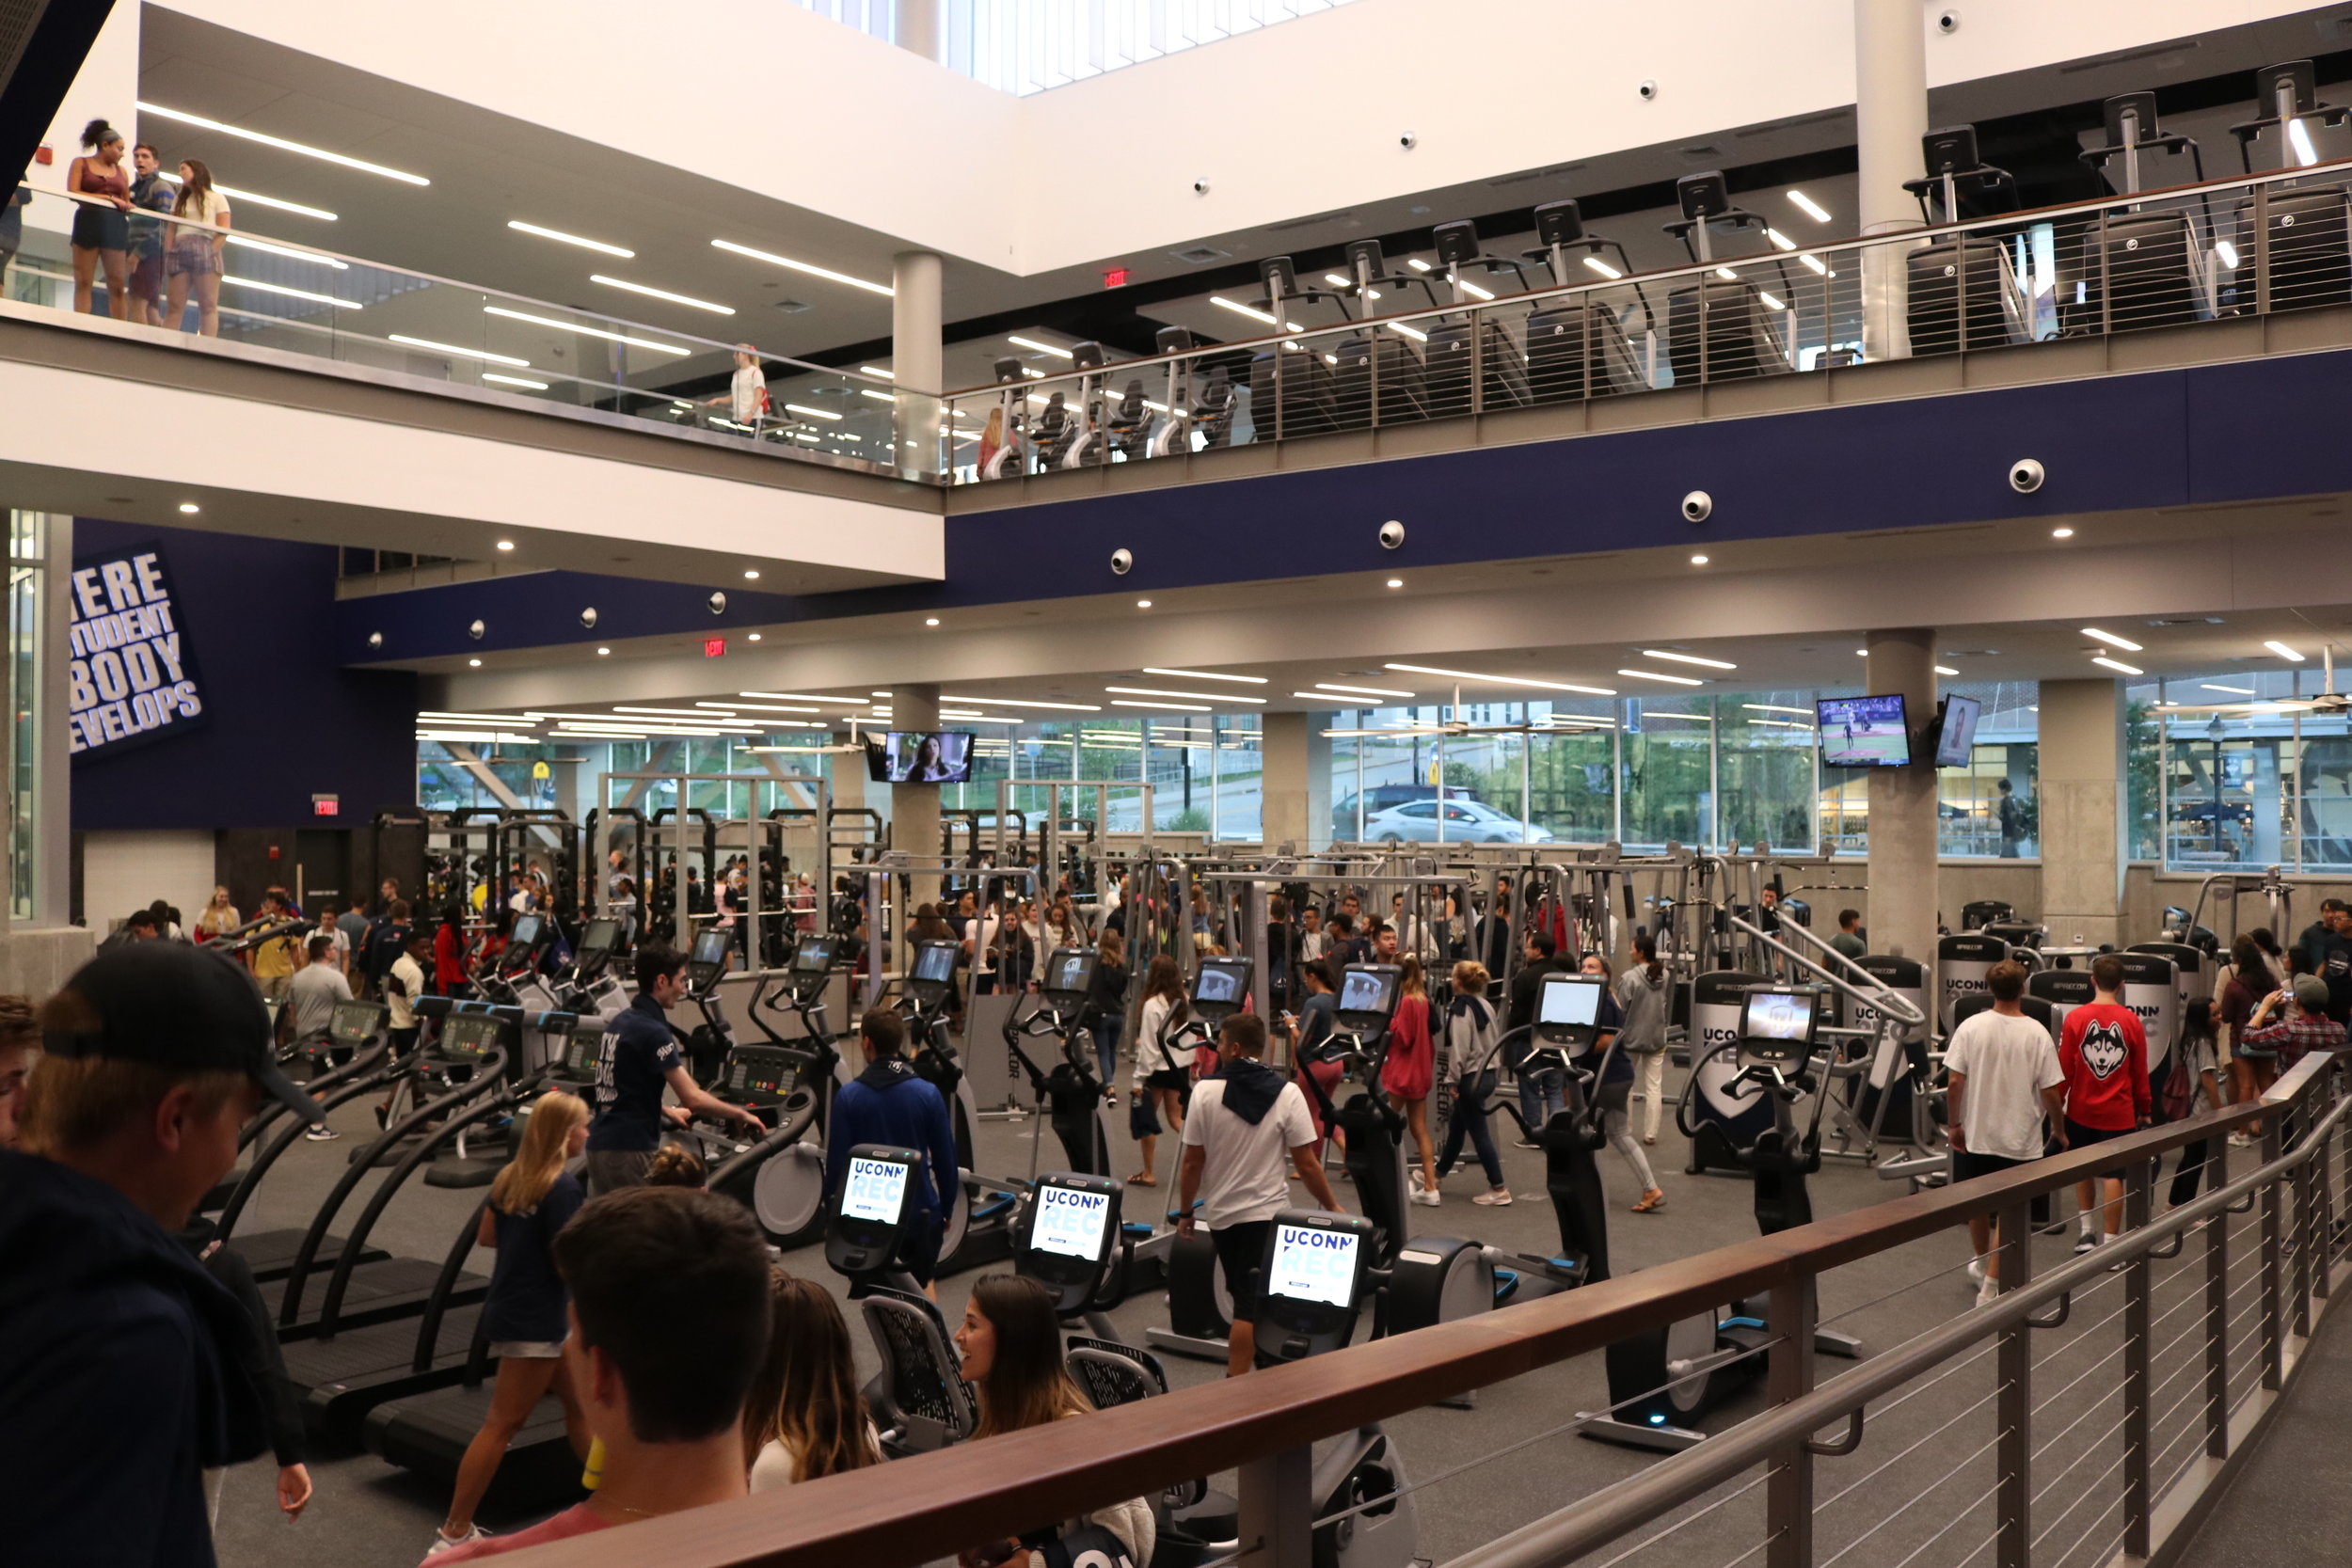 All students, regardless of how many credits they are taking, must pay the Rec Center fee of $250 per semester, according to University Communications.  Photo by Maggie Chafouleas / The Daily Campus